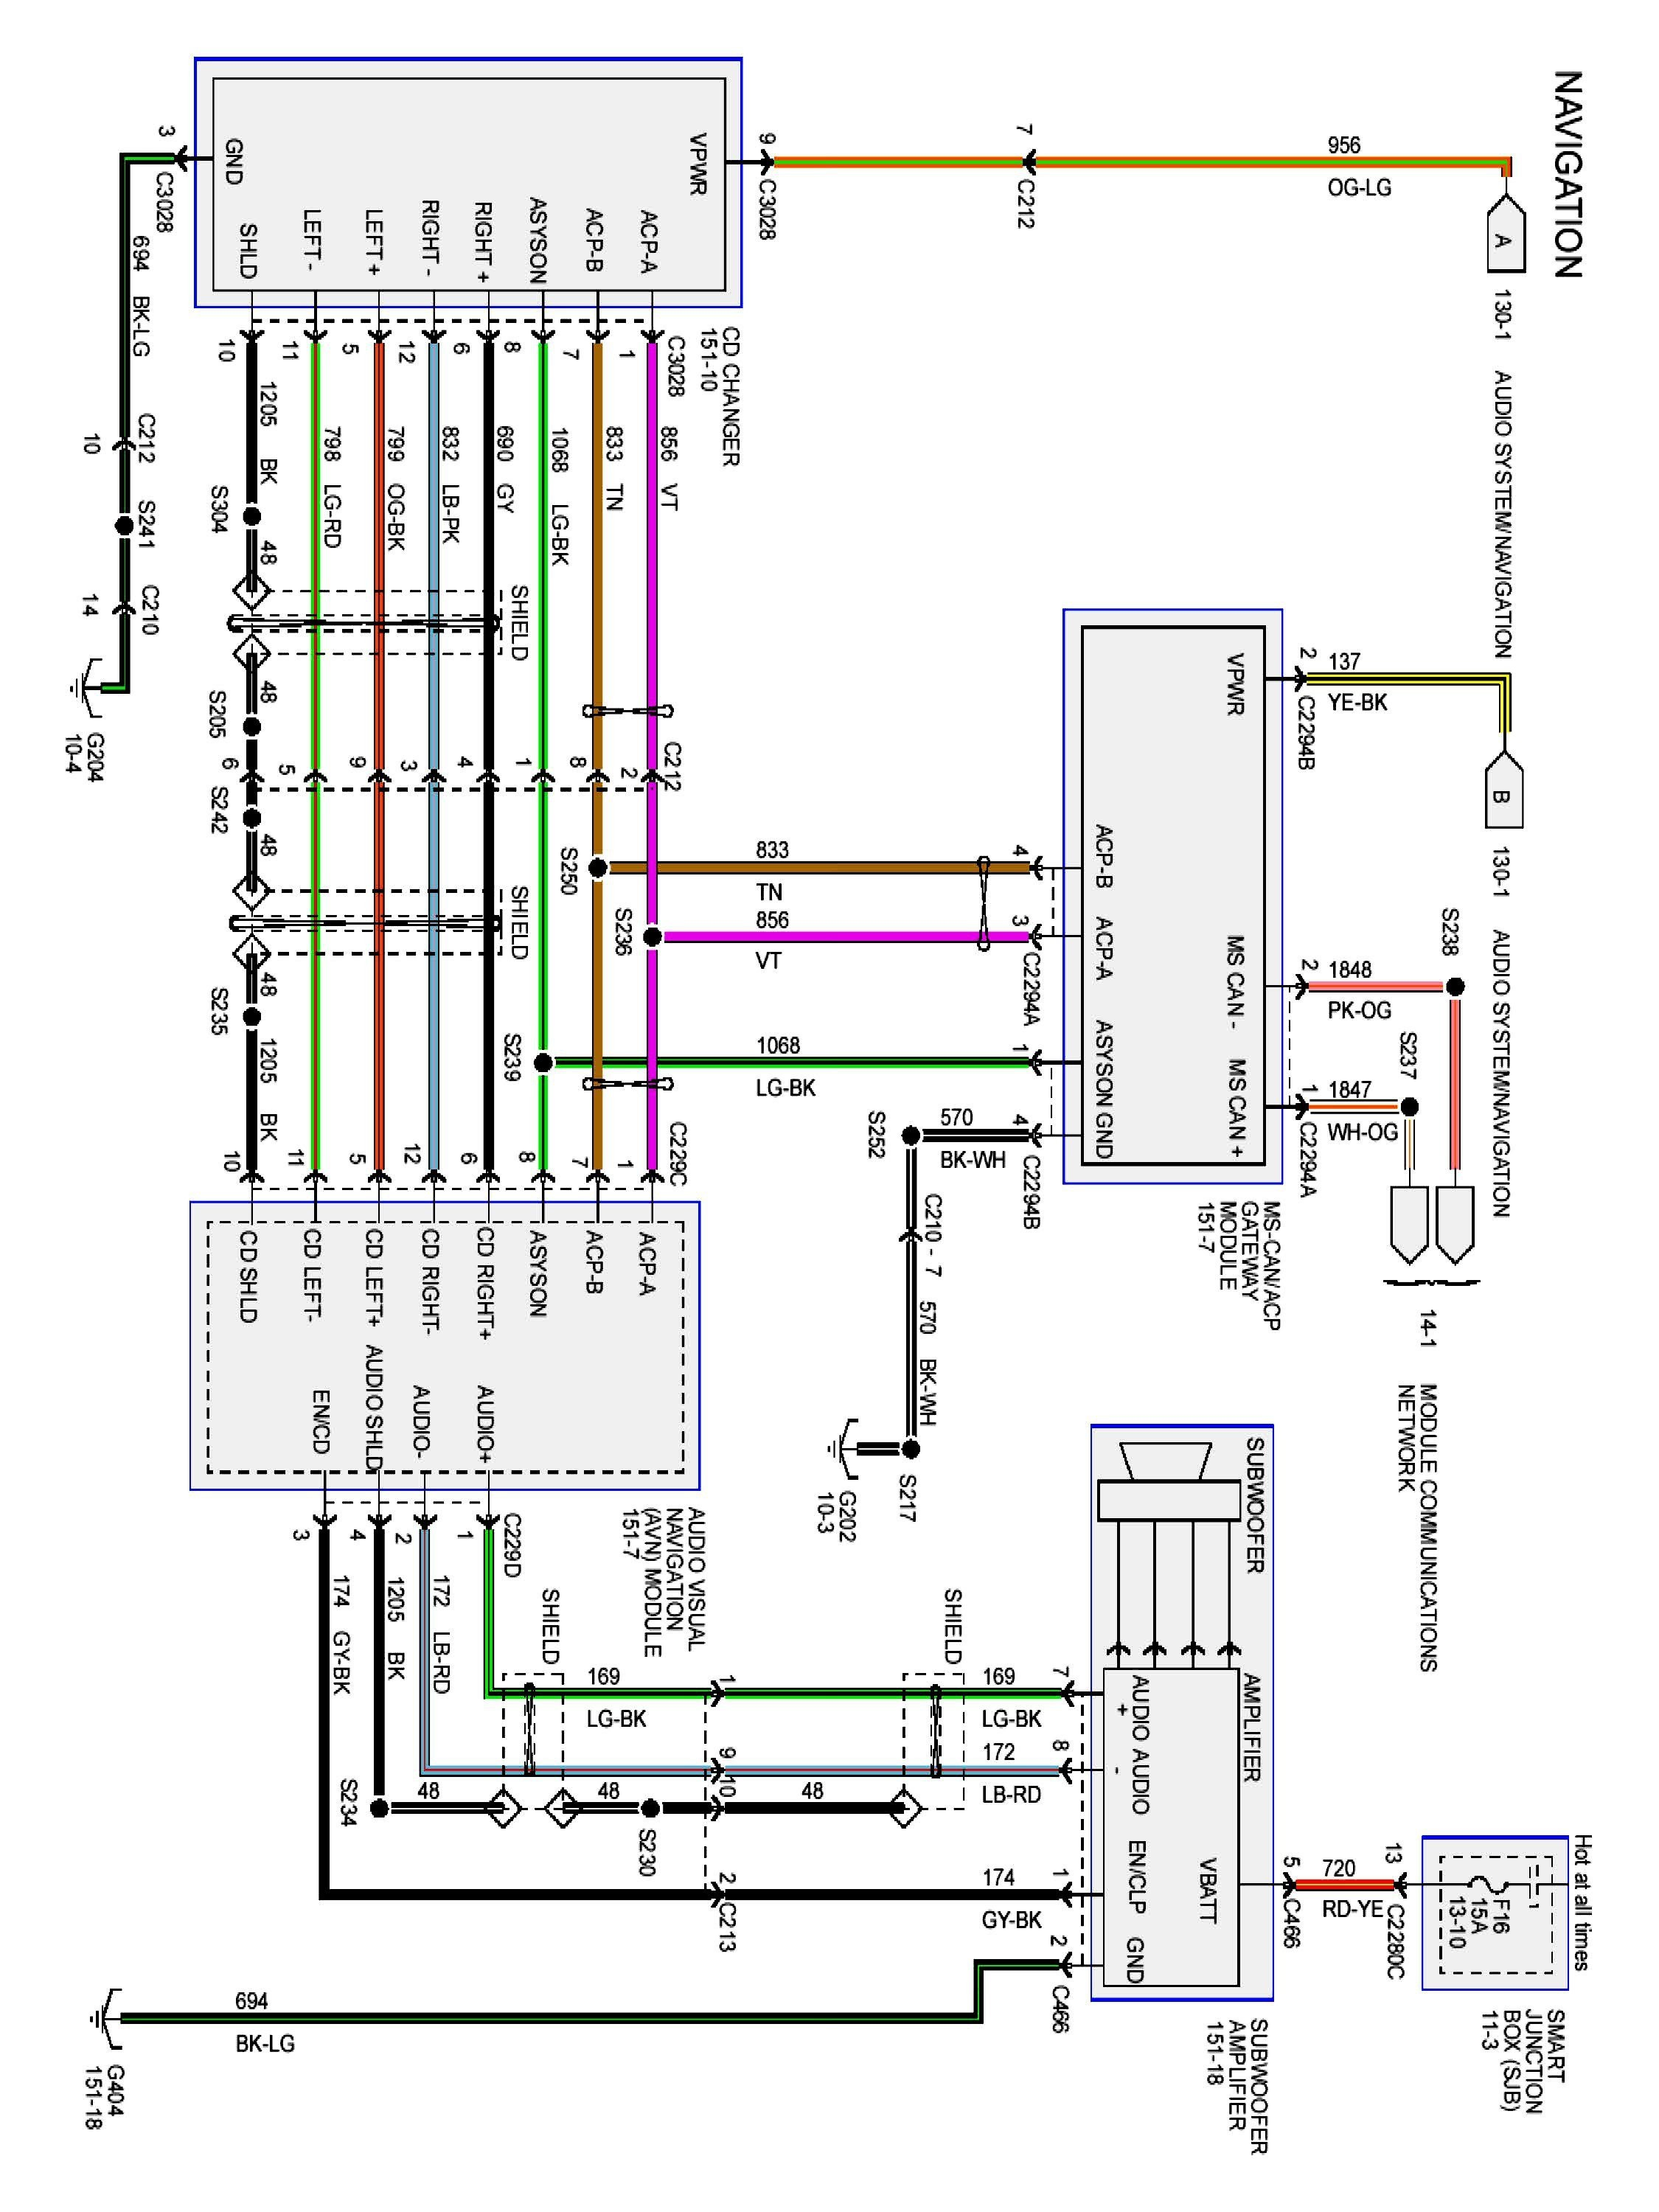 Ford F250 Stereo Wiring Diagram from detoxicrecenze.com